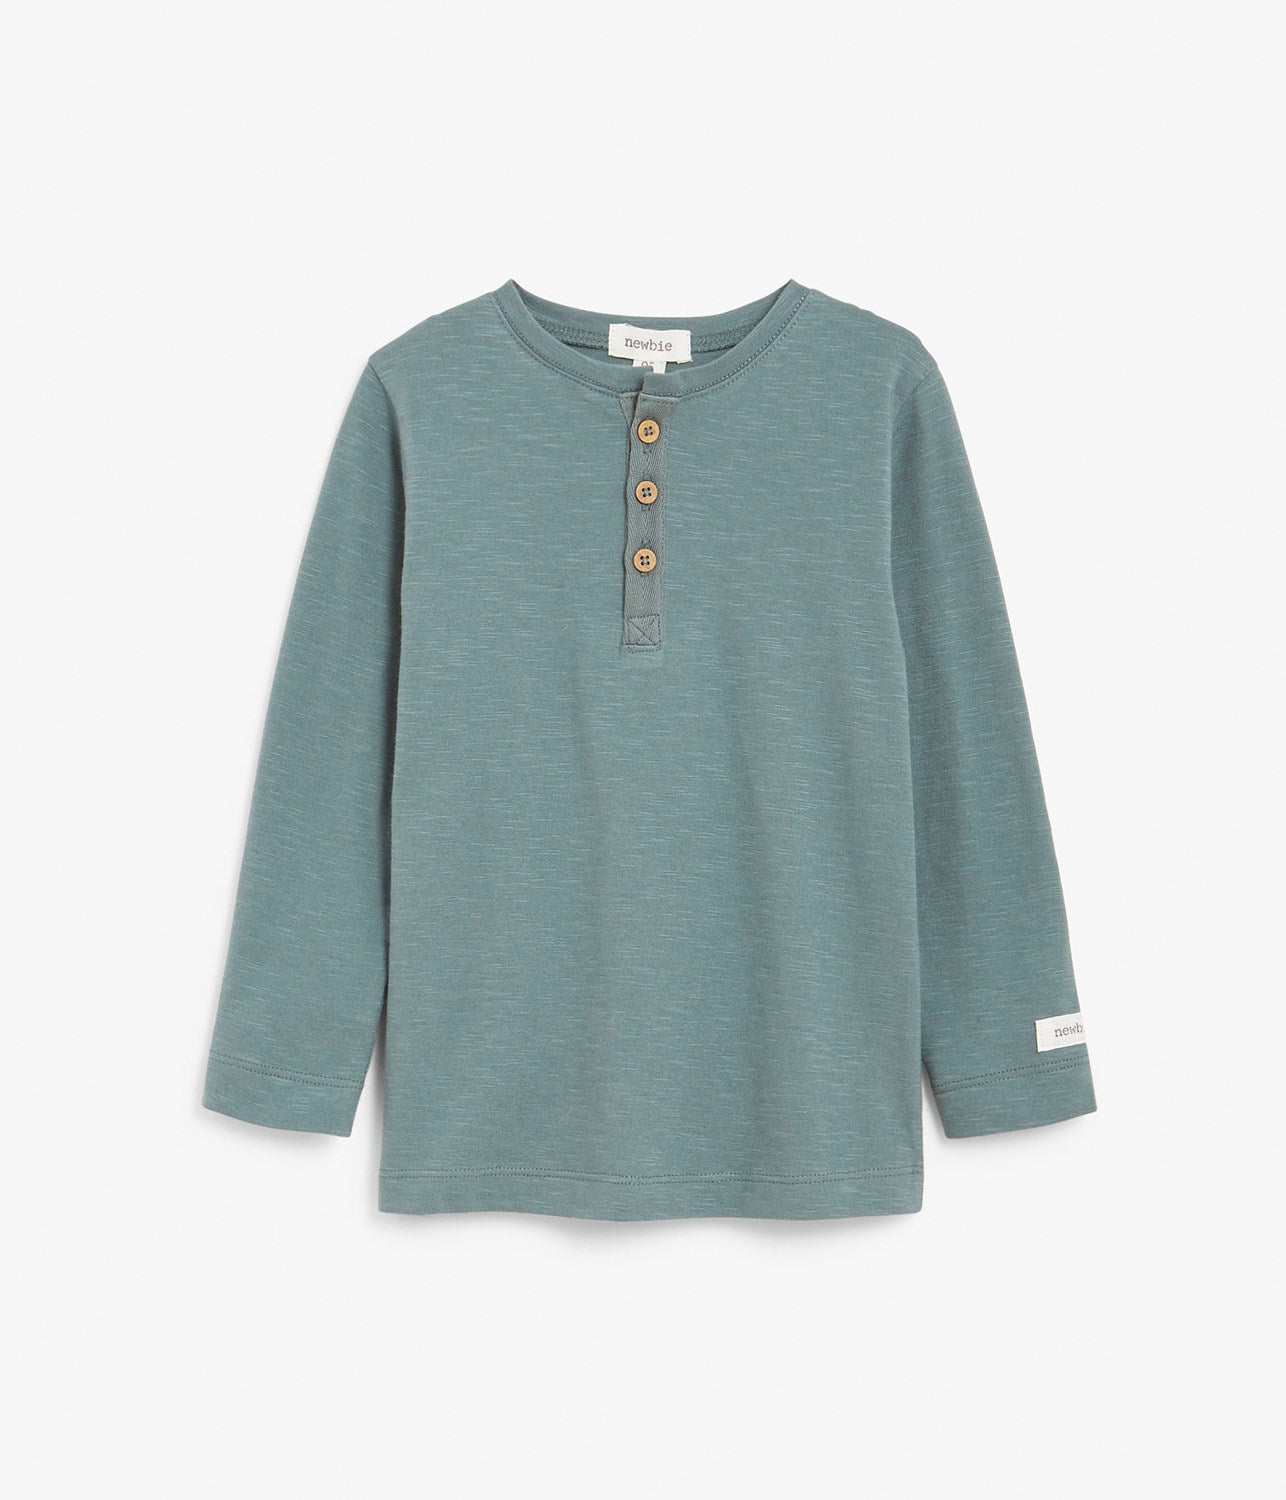 Kids teal basic long sleeve top